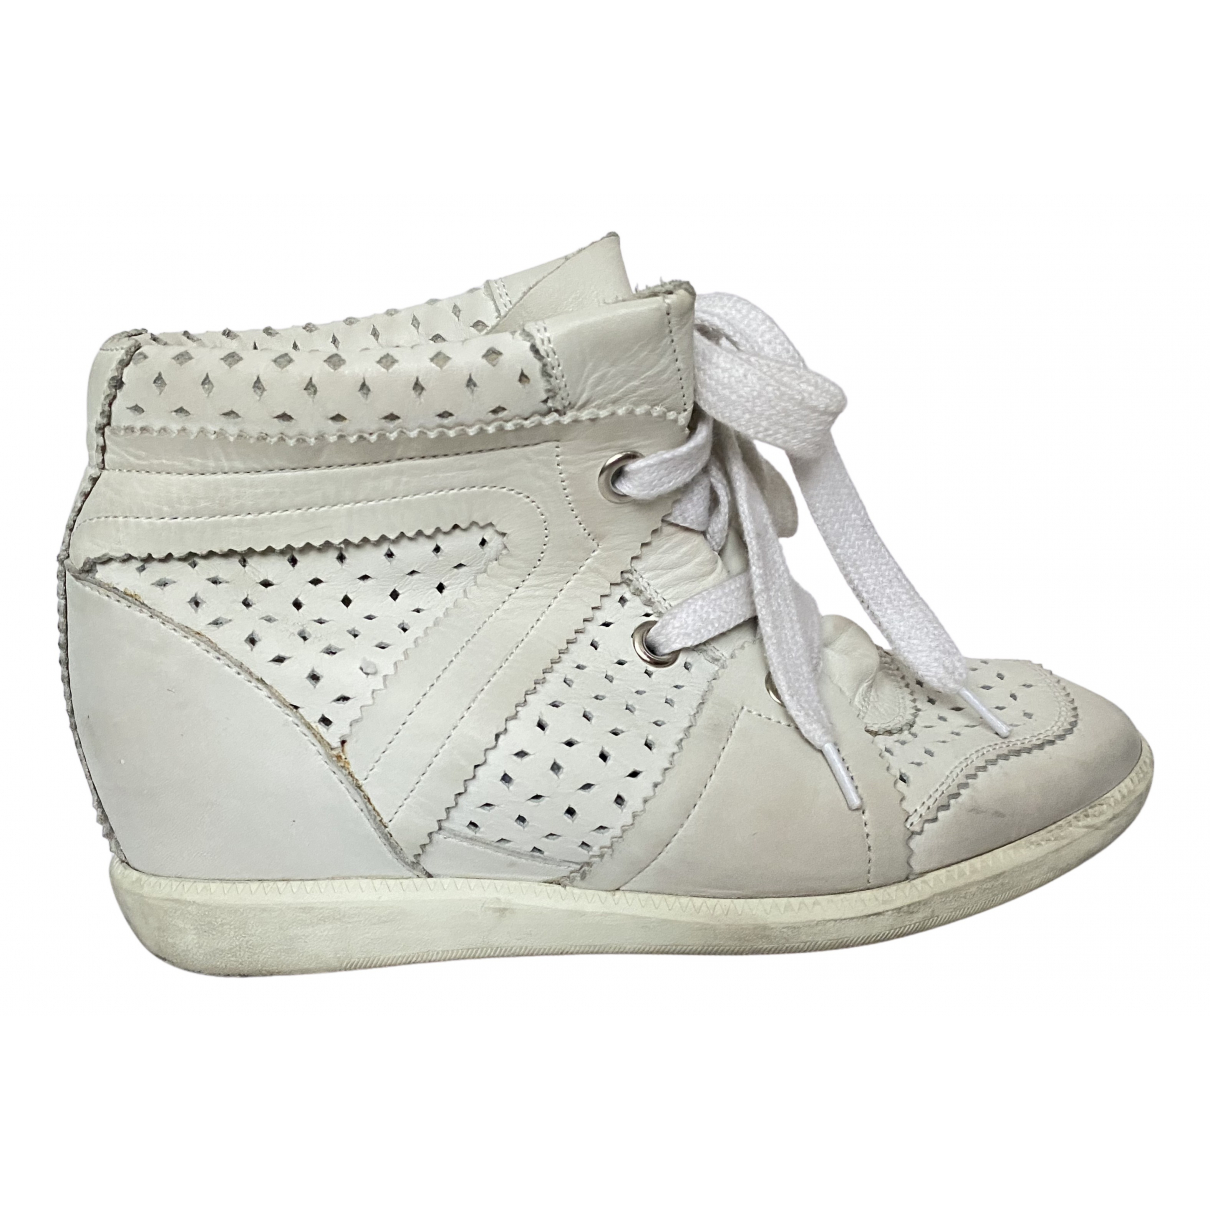 Isabel Marant Betty Sneakers in  Weiss Leder